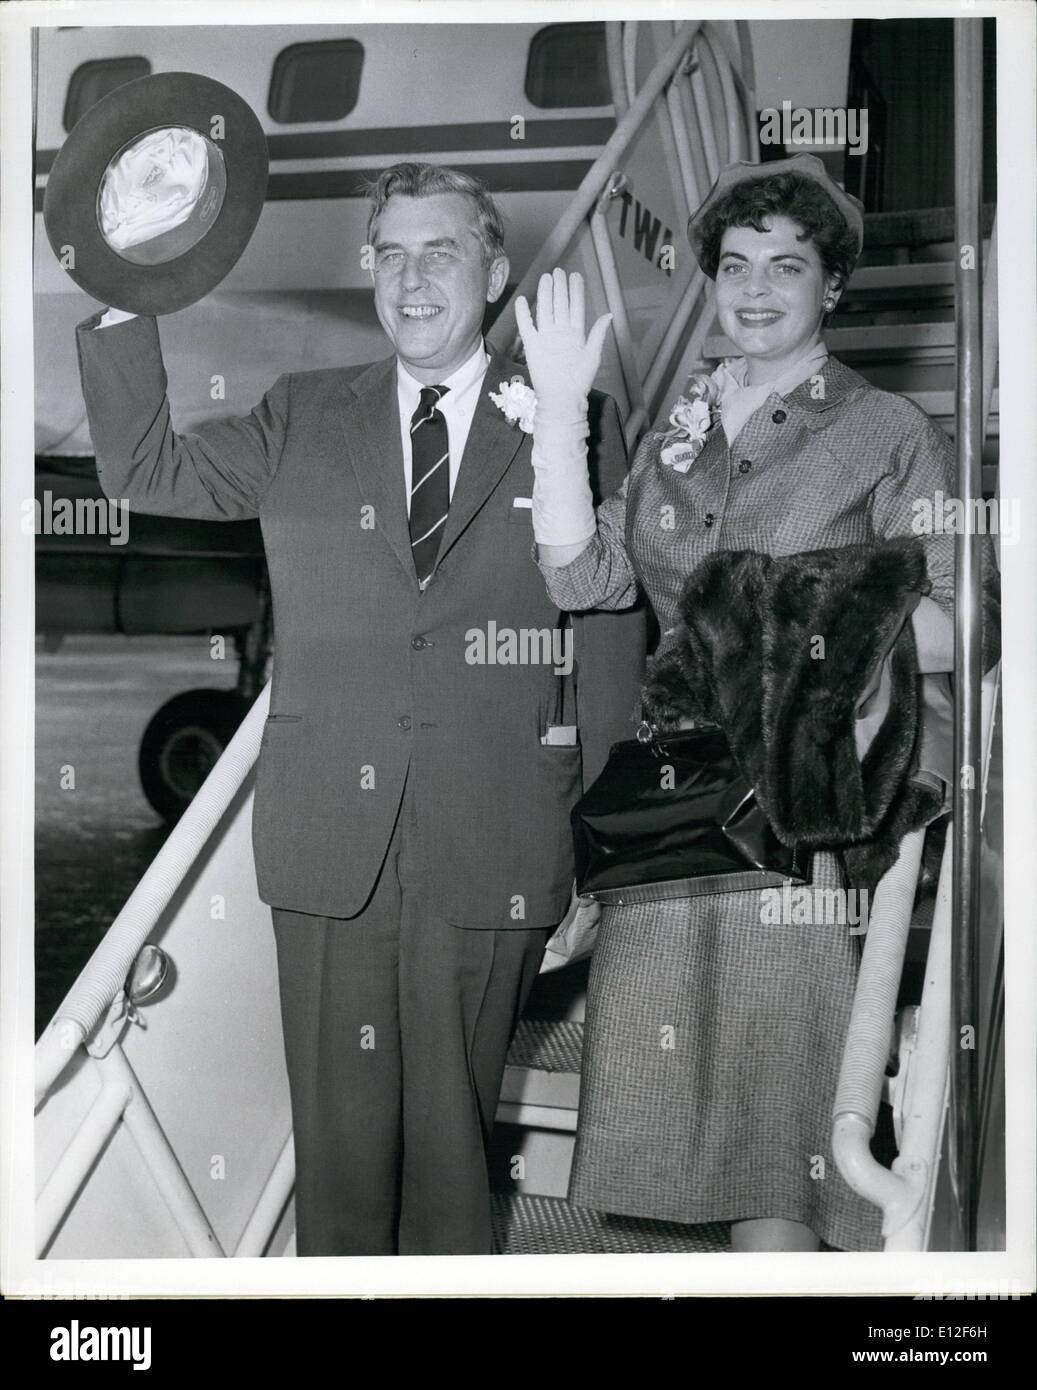 Dec. 21, 2011 - New York International Airport- April 23 -- Governor and Mrs. Robert Meyner of New Jersey Left today on a TWA super-G Constellation for London on the first leg of a two-weeks visit to Europe. They will visit Ireland, France, Holland and the Brussels fair Before flying home from London on May 7. - Stock Image